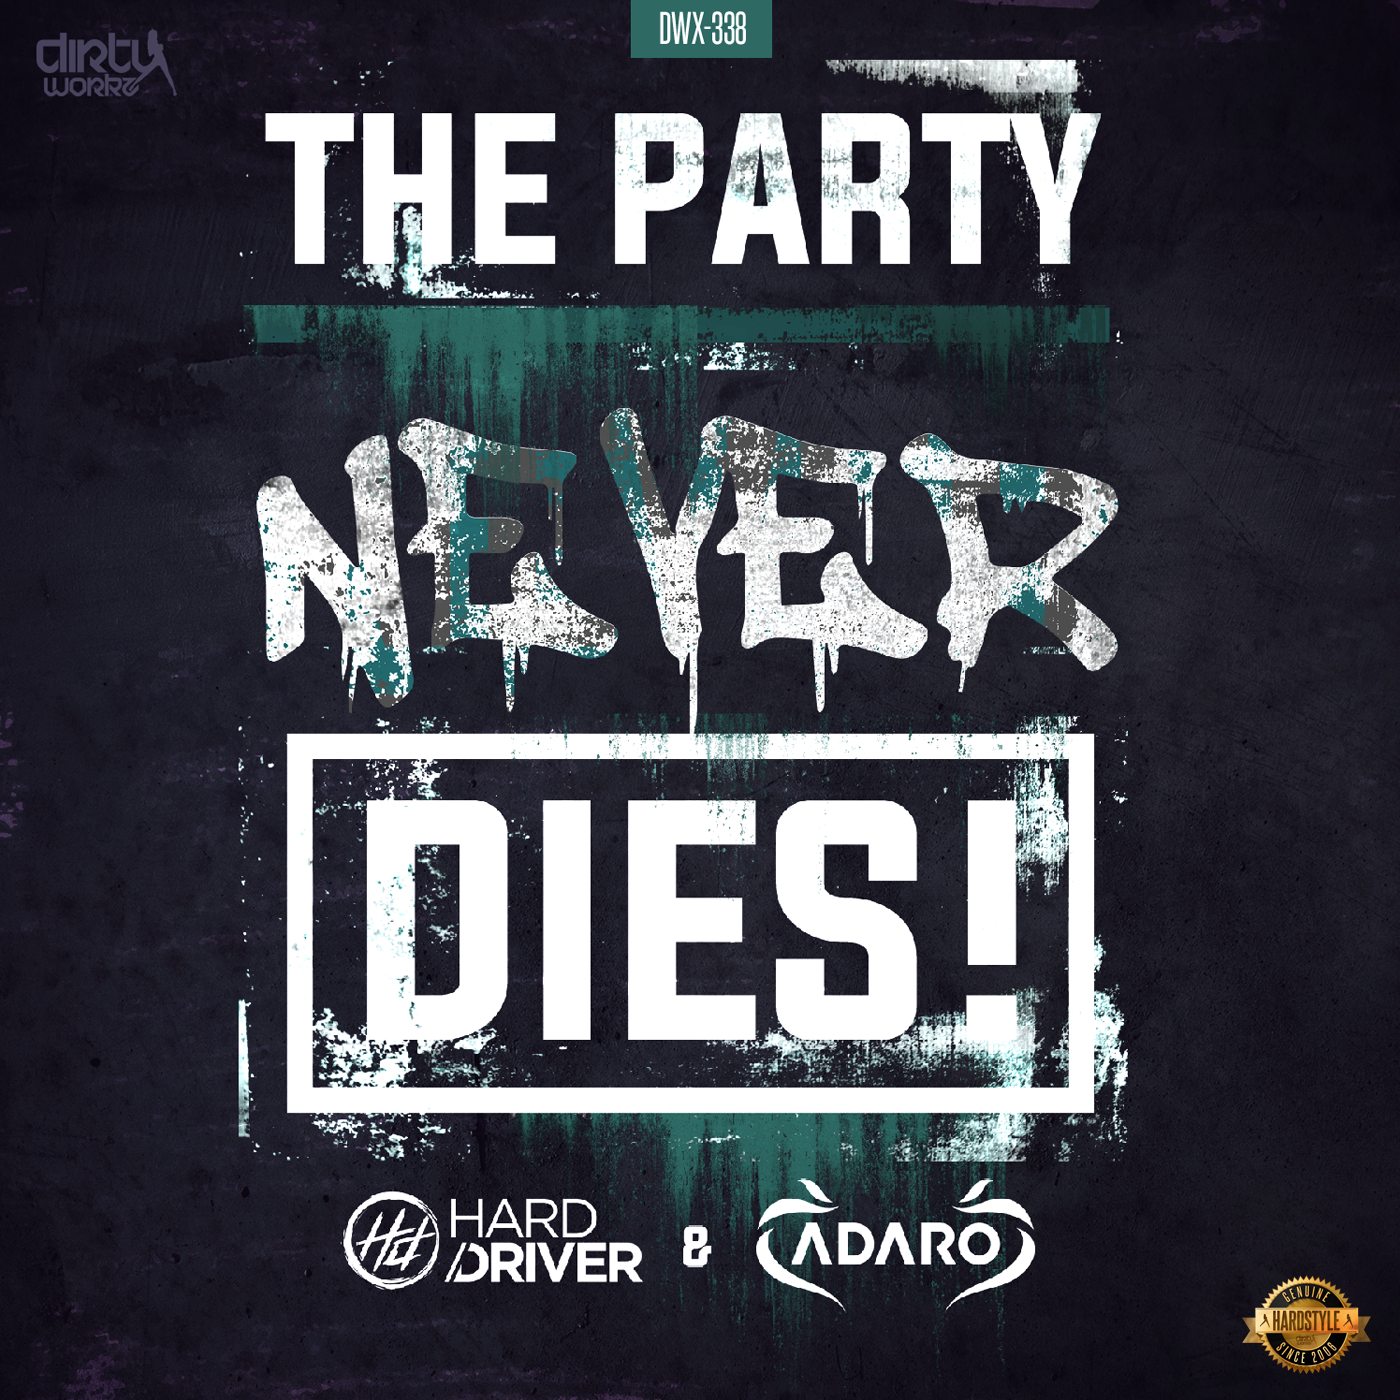 Hard Driver & Adaro - The Party Never Dies [DIRTY WORKZ] DWX338